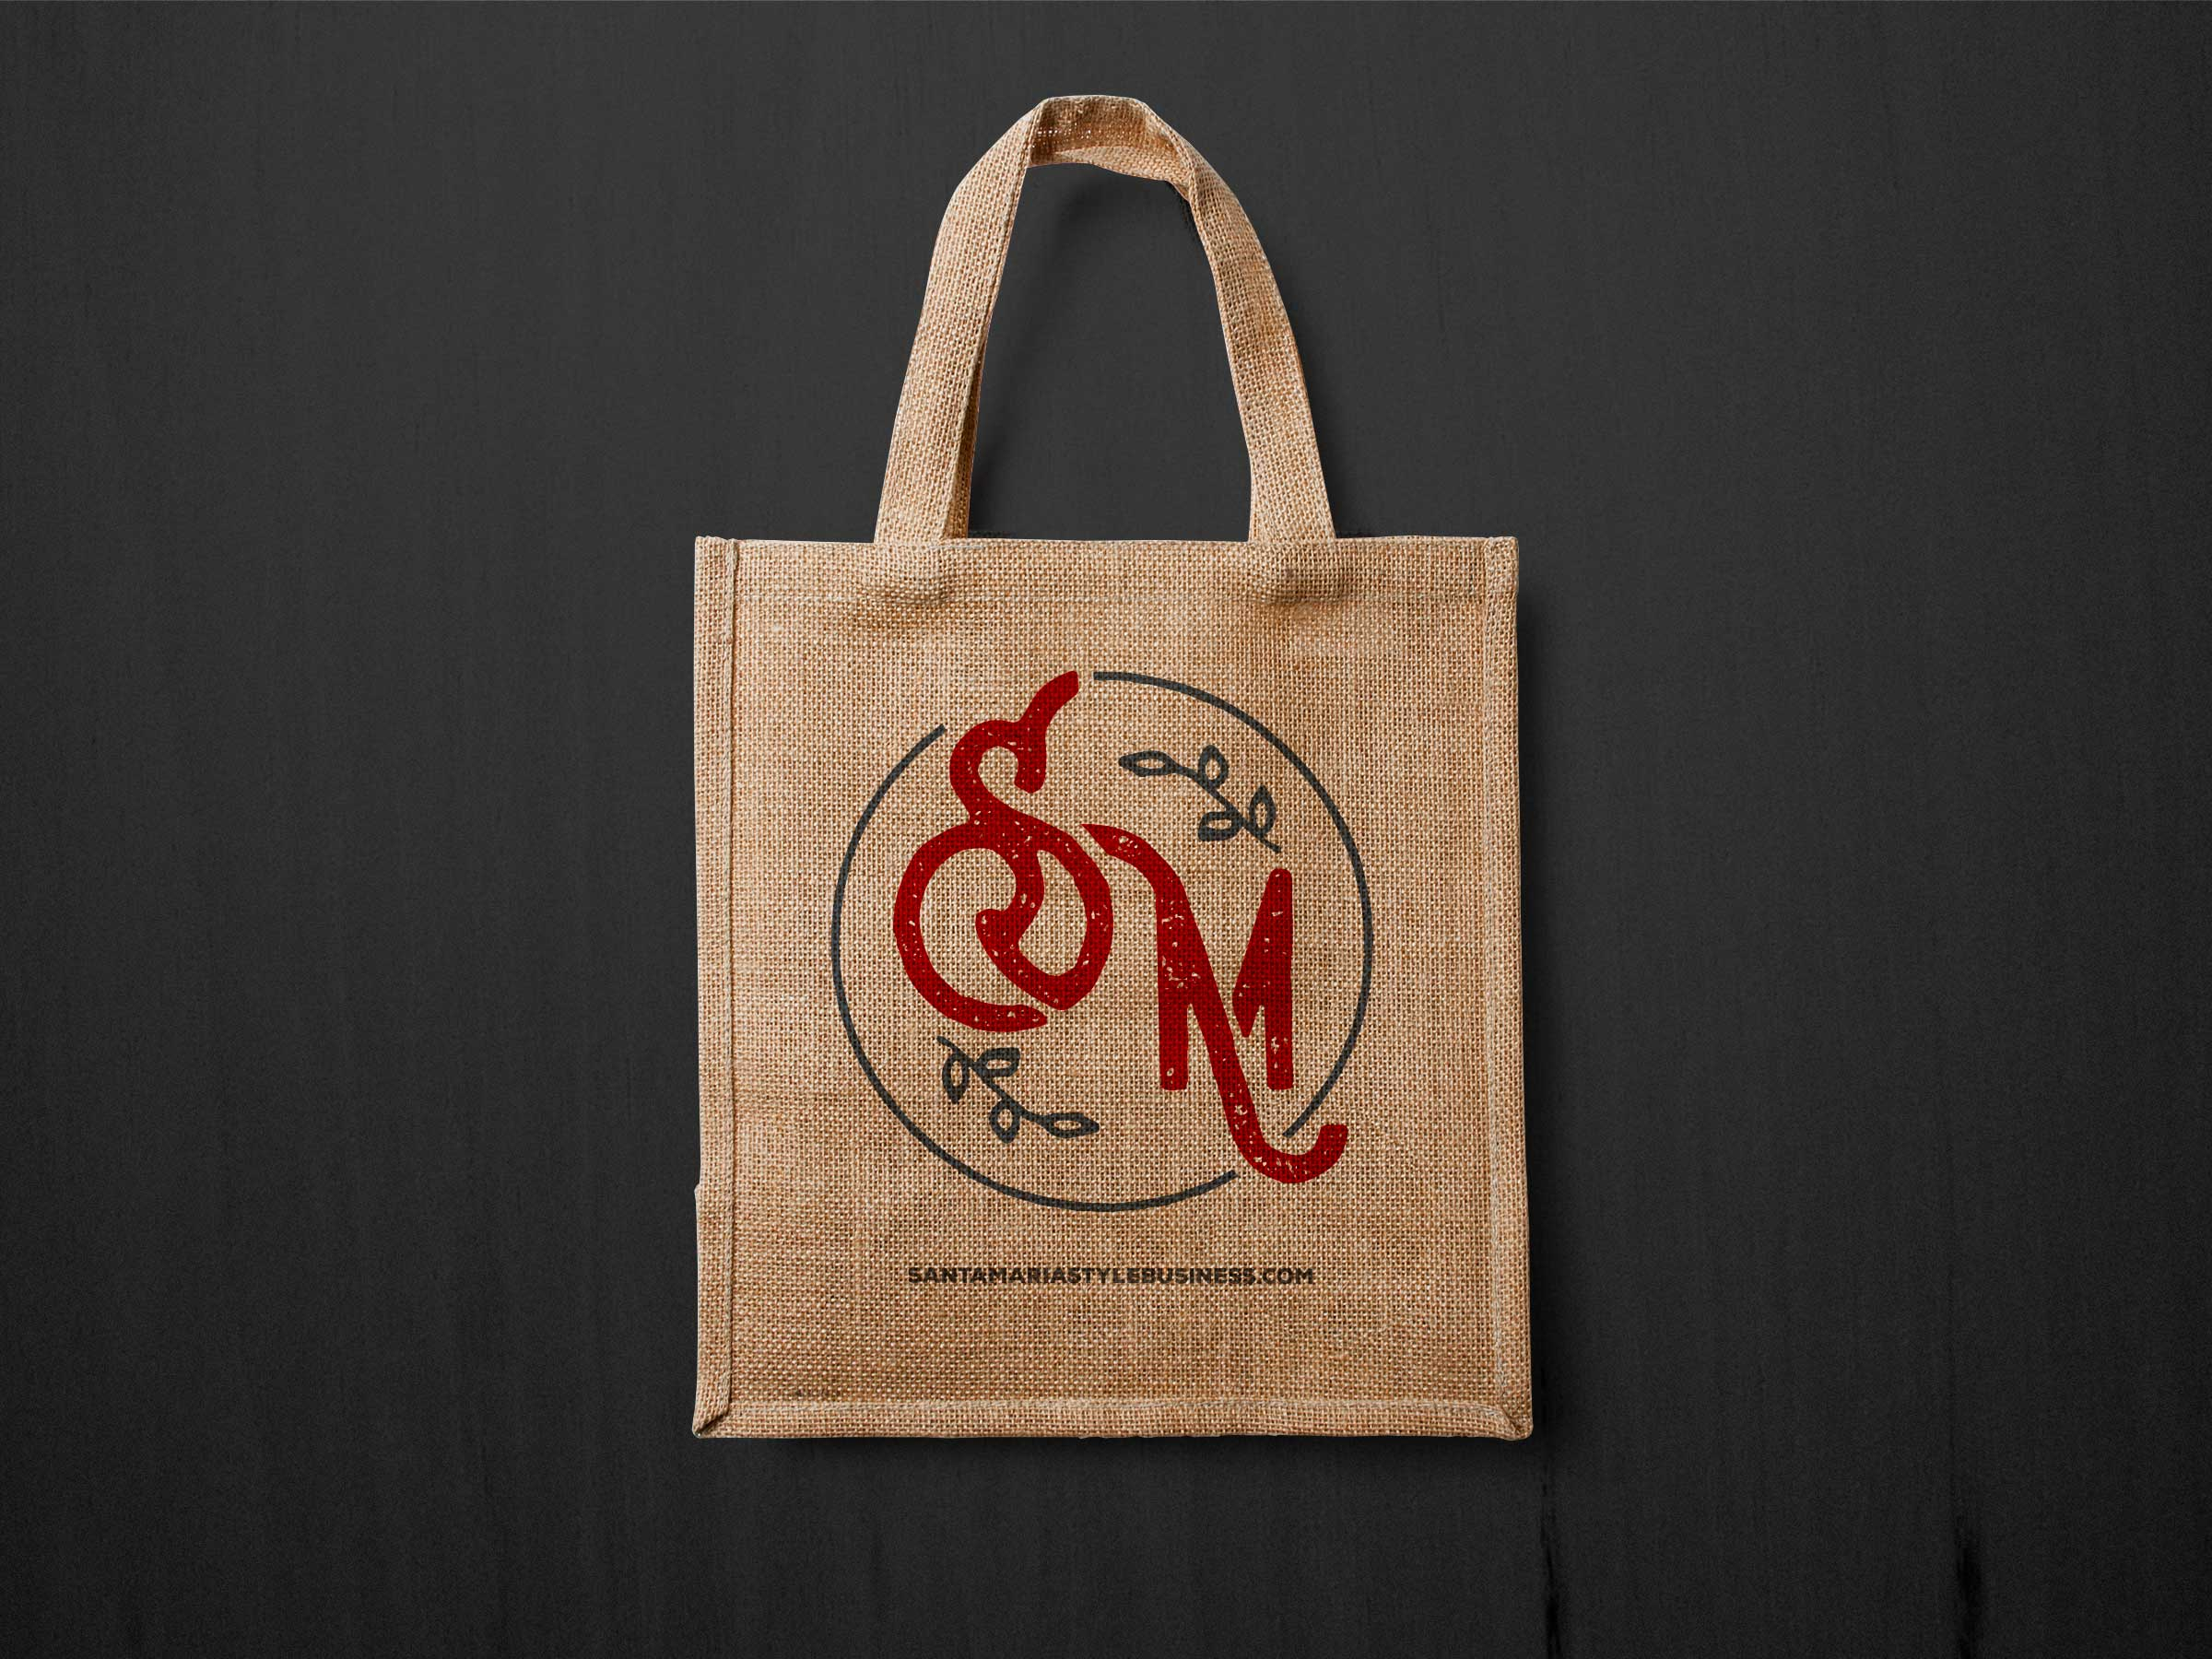 Santa-Maria-Stye-Biz-Brand-3c-logo-on-reusable-bag